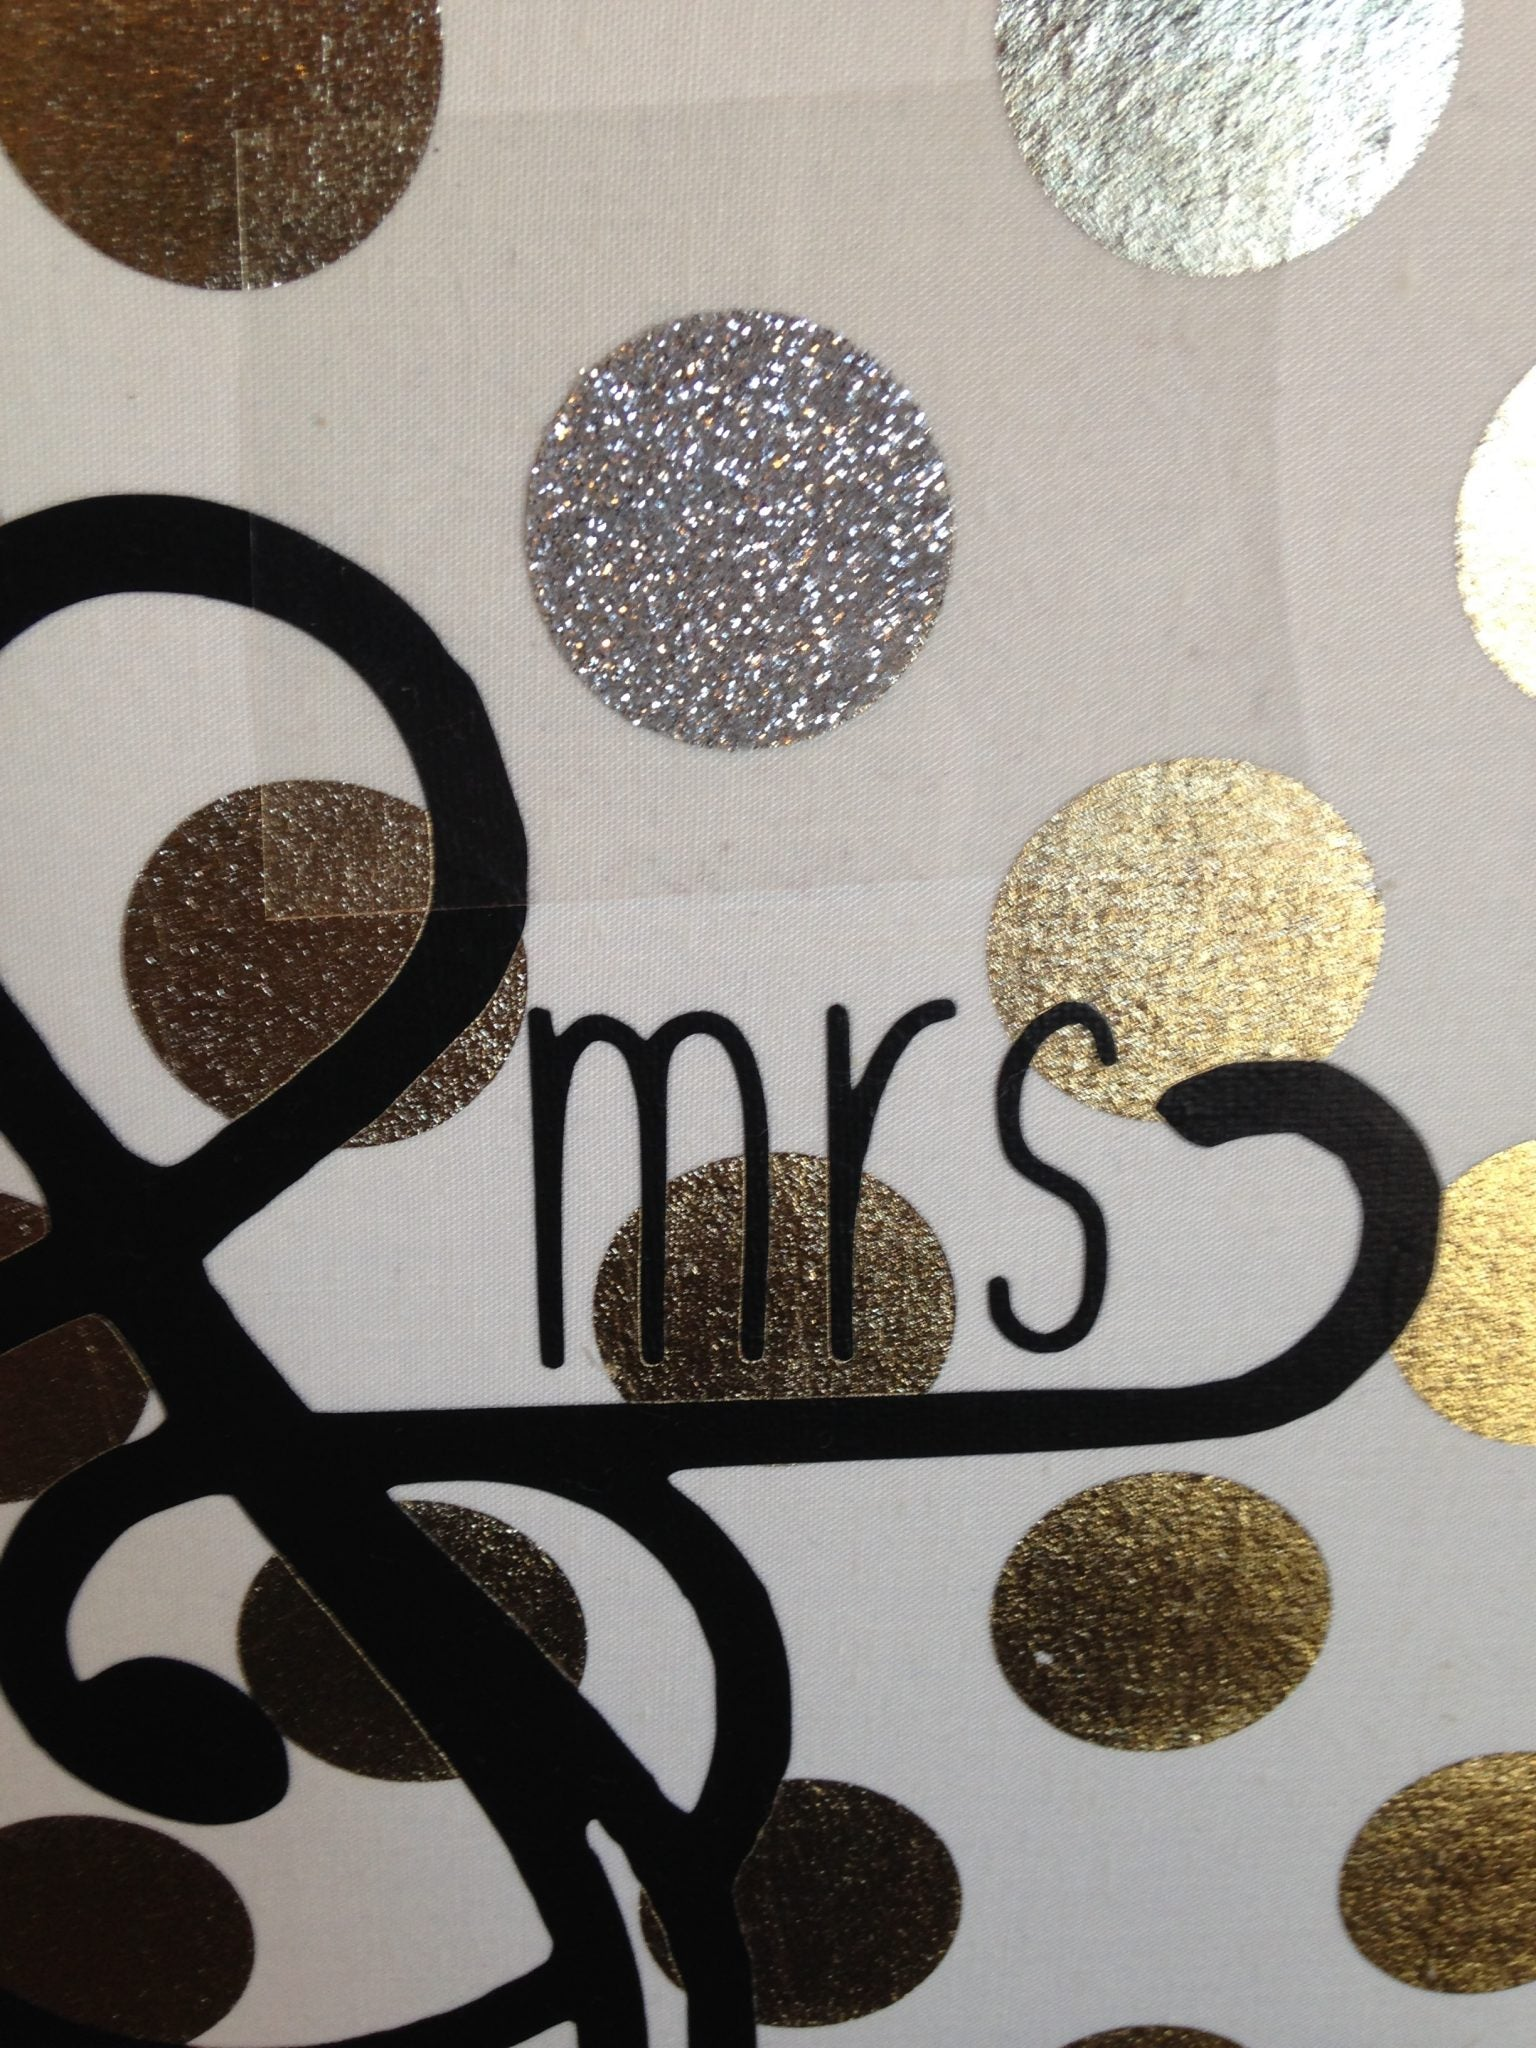 Use glitter heat transfer vinyl to cover up the mistakes.